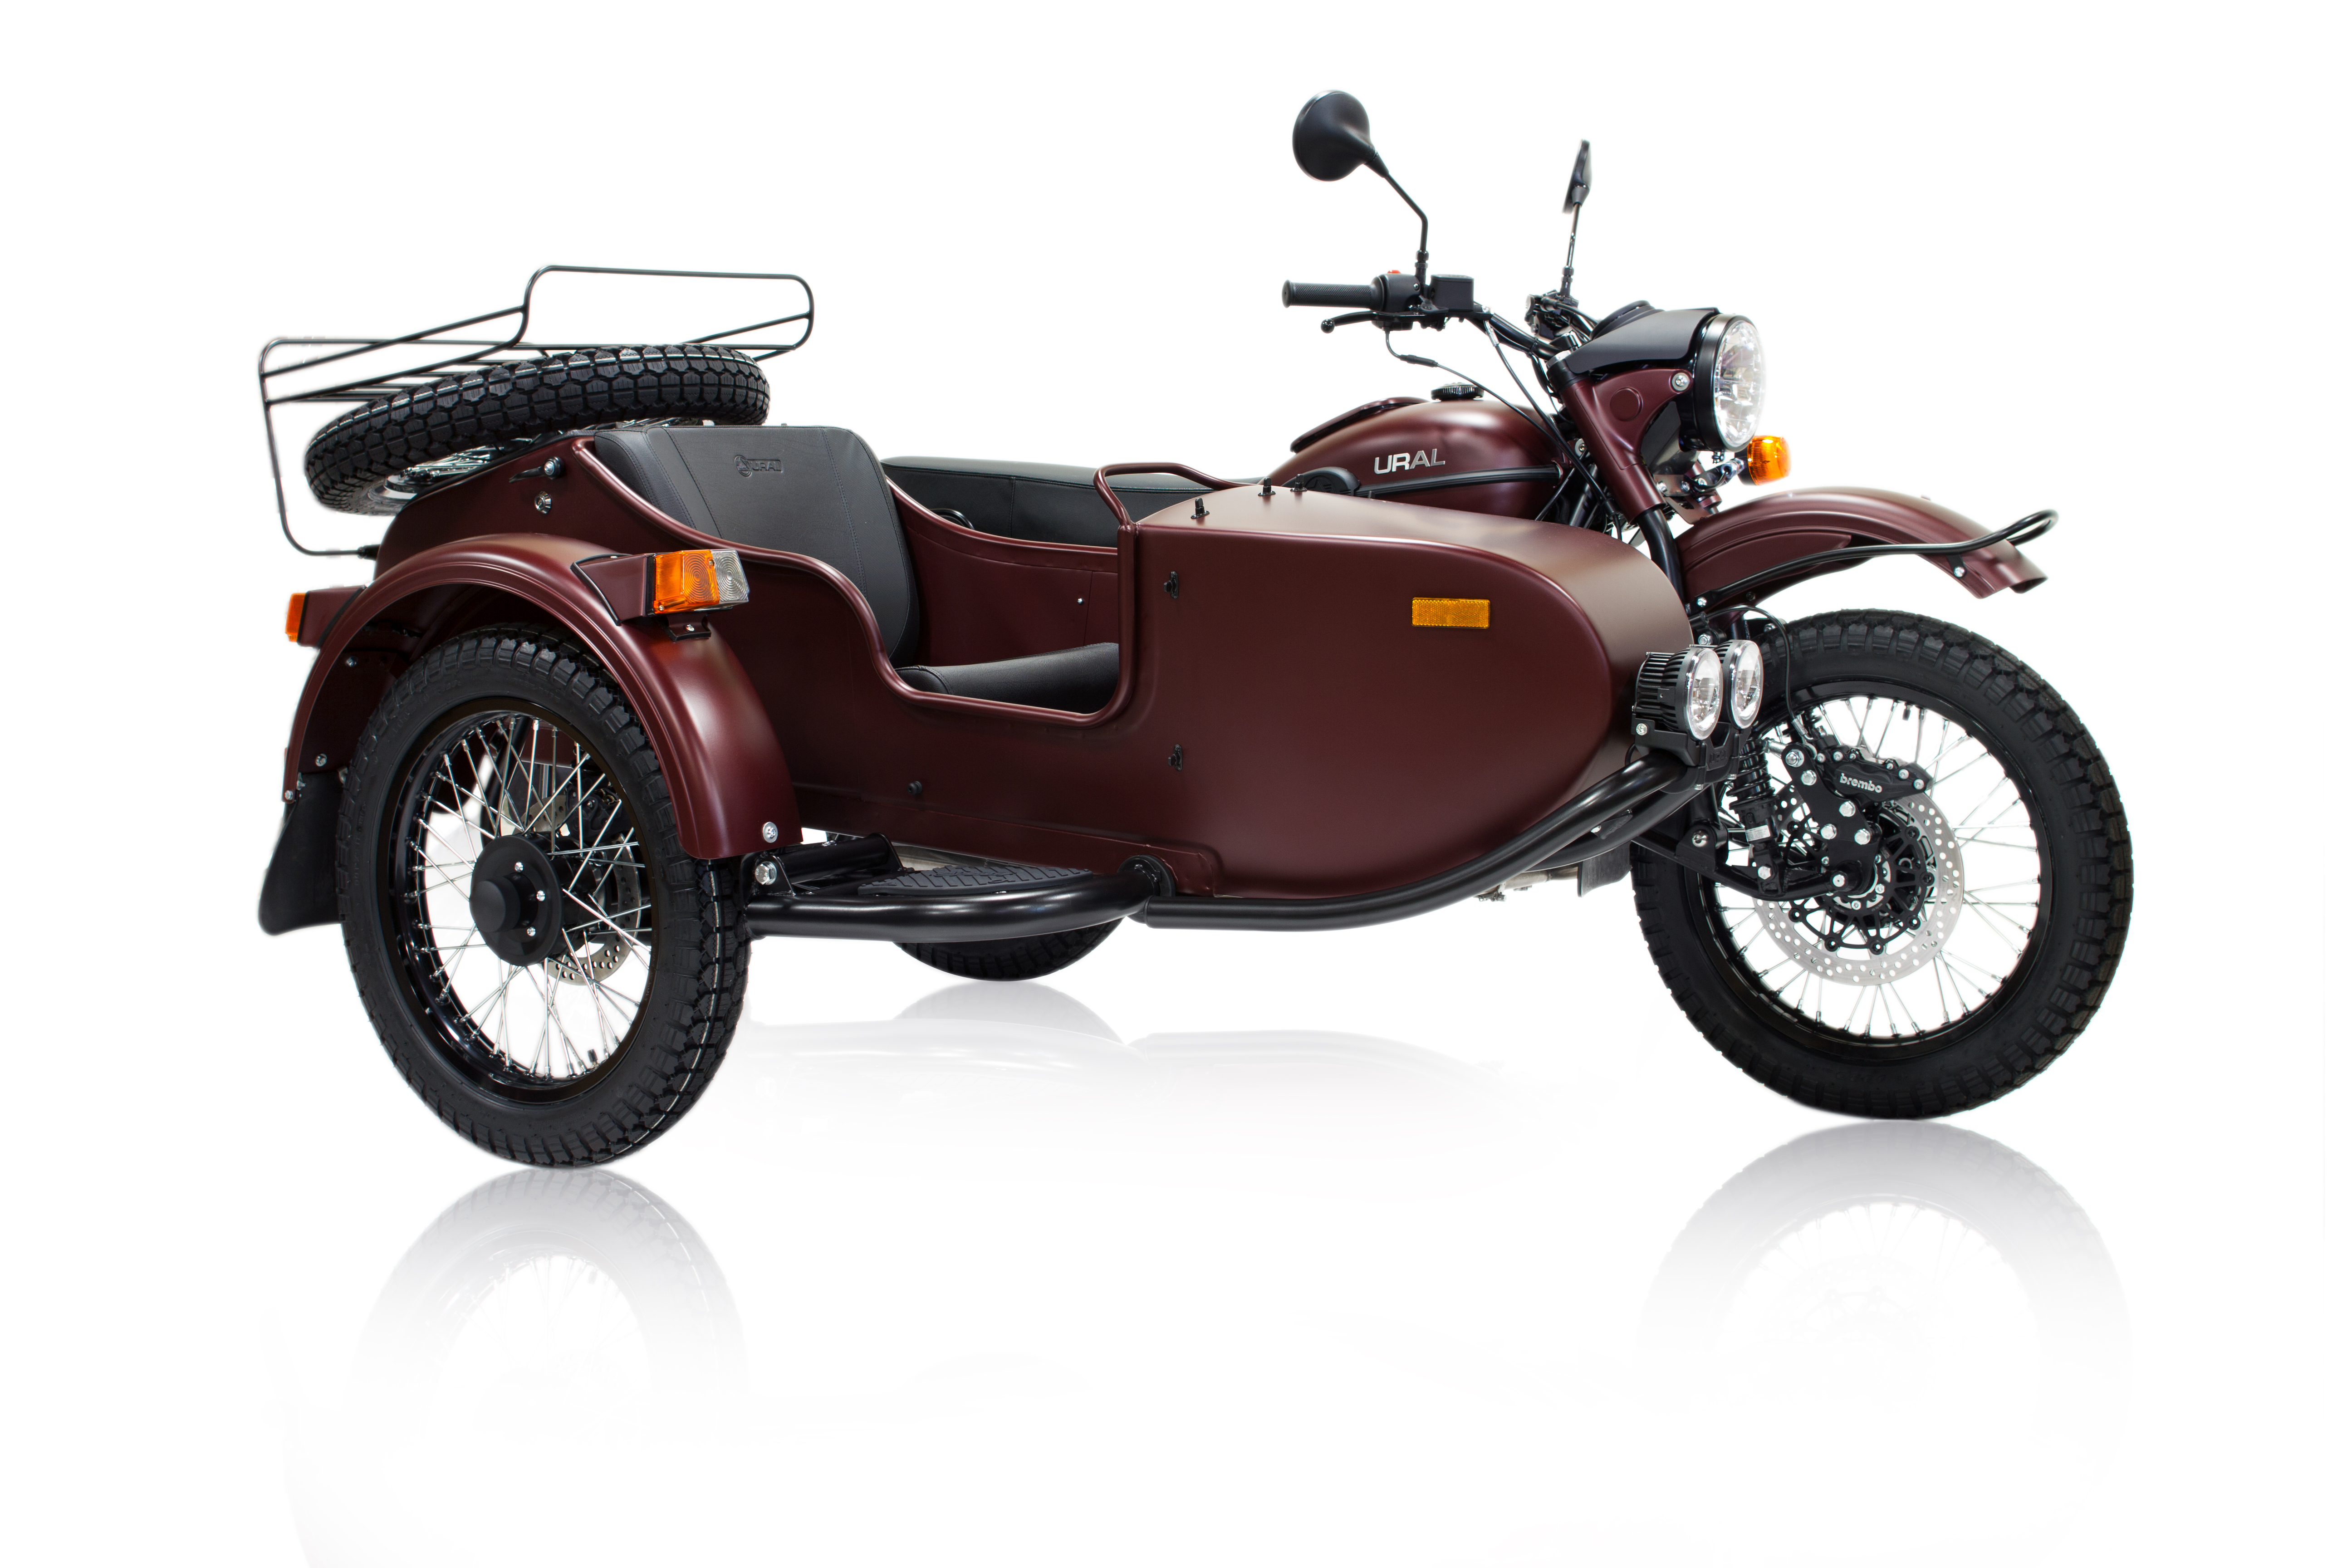 New Ural Gear Up in Boxborough